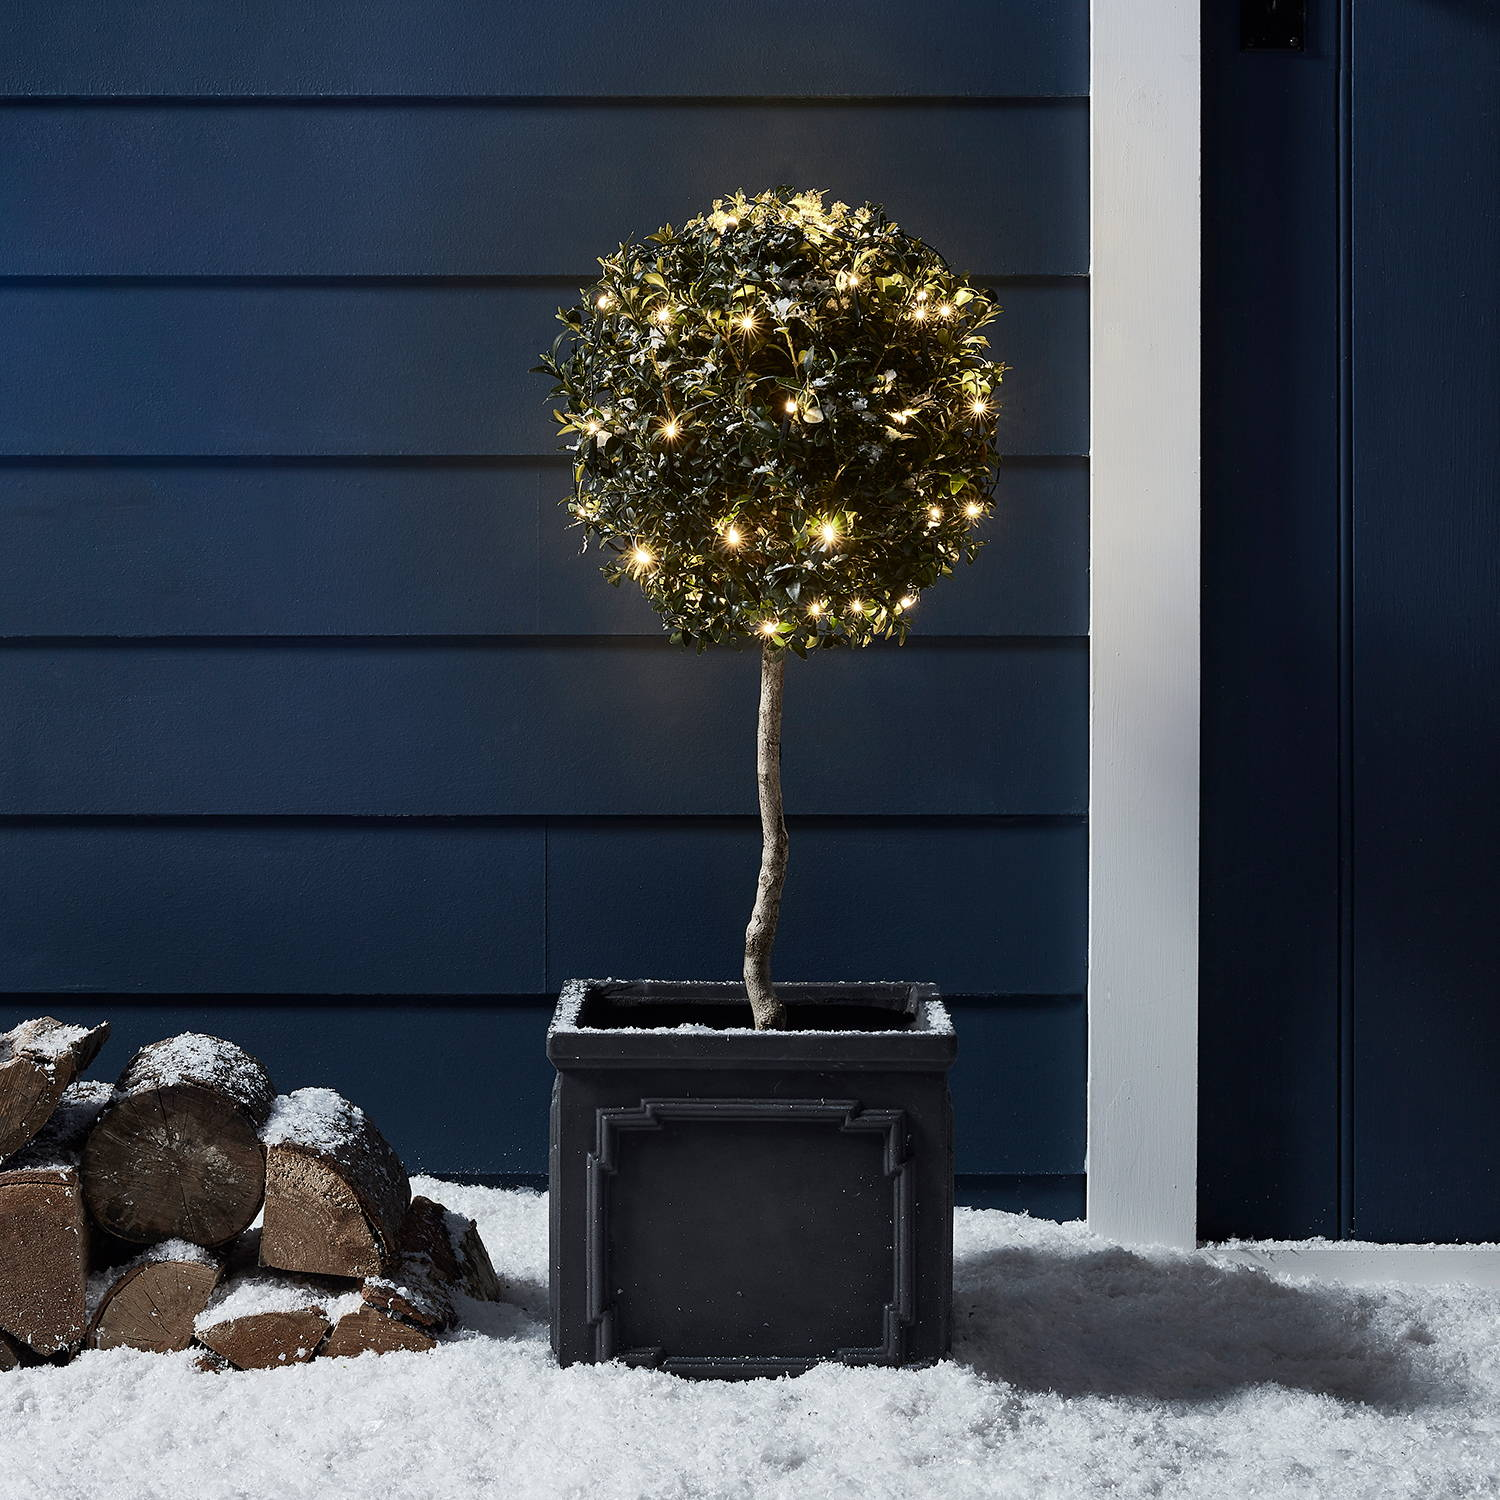 Warm White Battery Lights on a small topiary tree